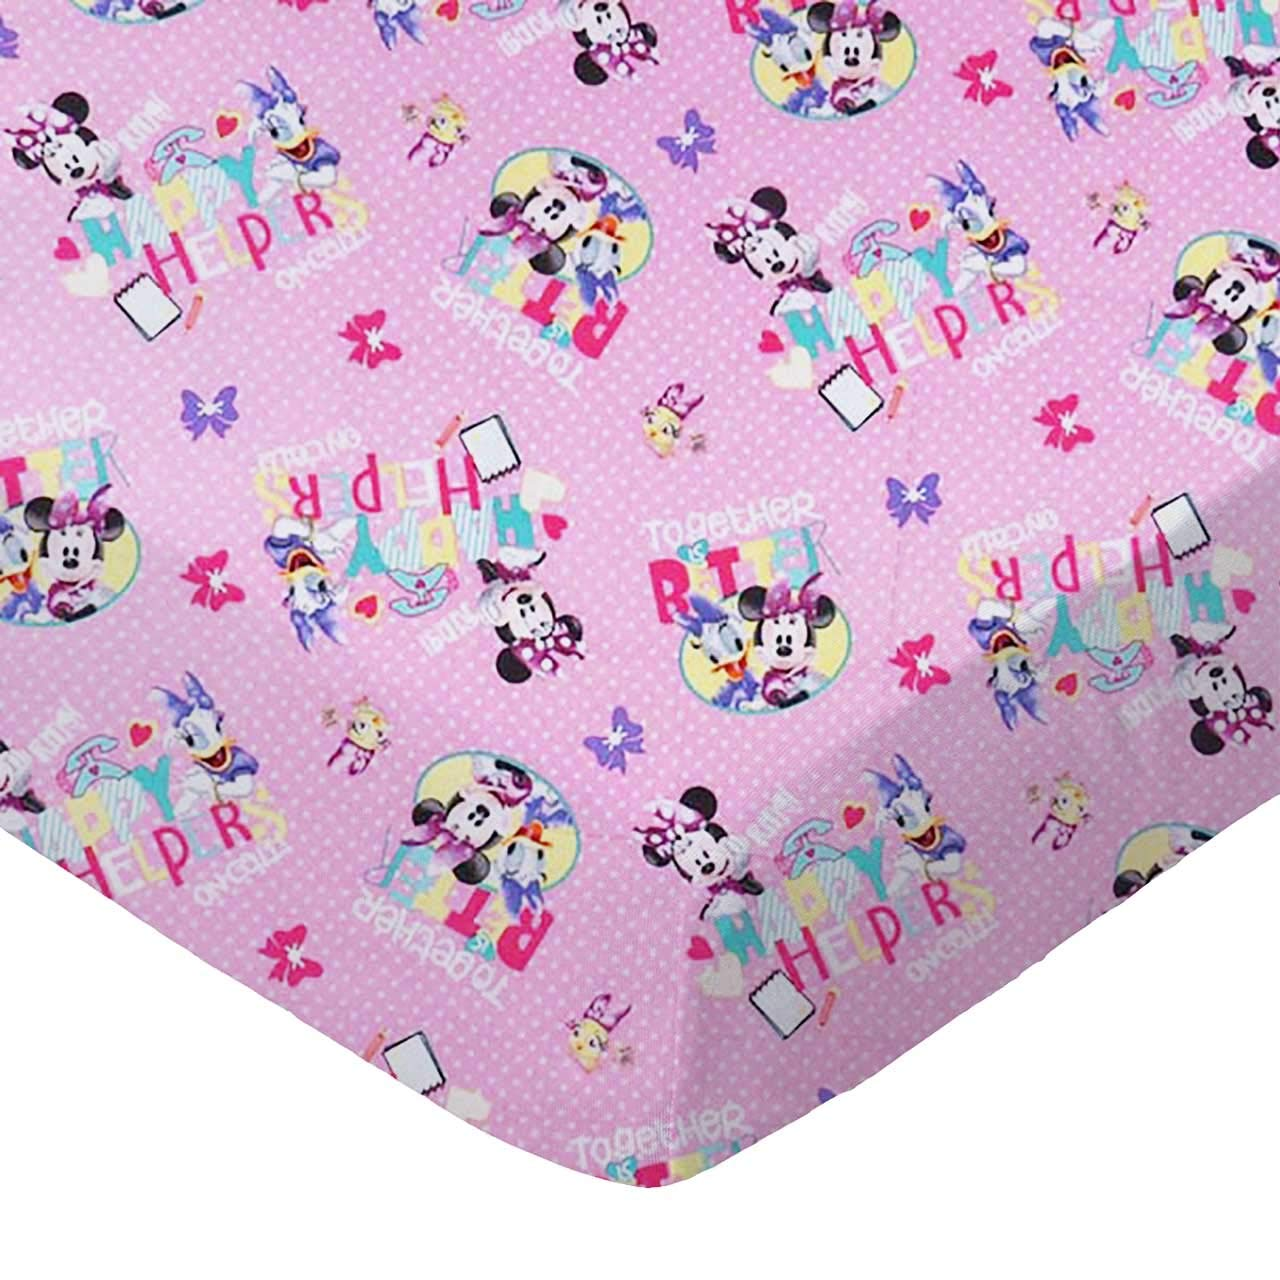 SheetWorld Fitted 100% Cotton Percale Pack N Play Sheet Fits Graco Square Play Yard 36 x 36, Minnie & Daffy, Made in USA